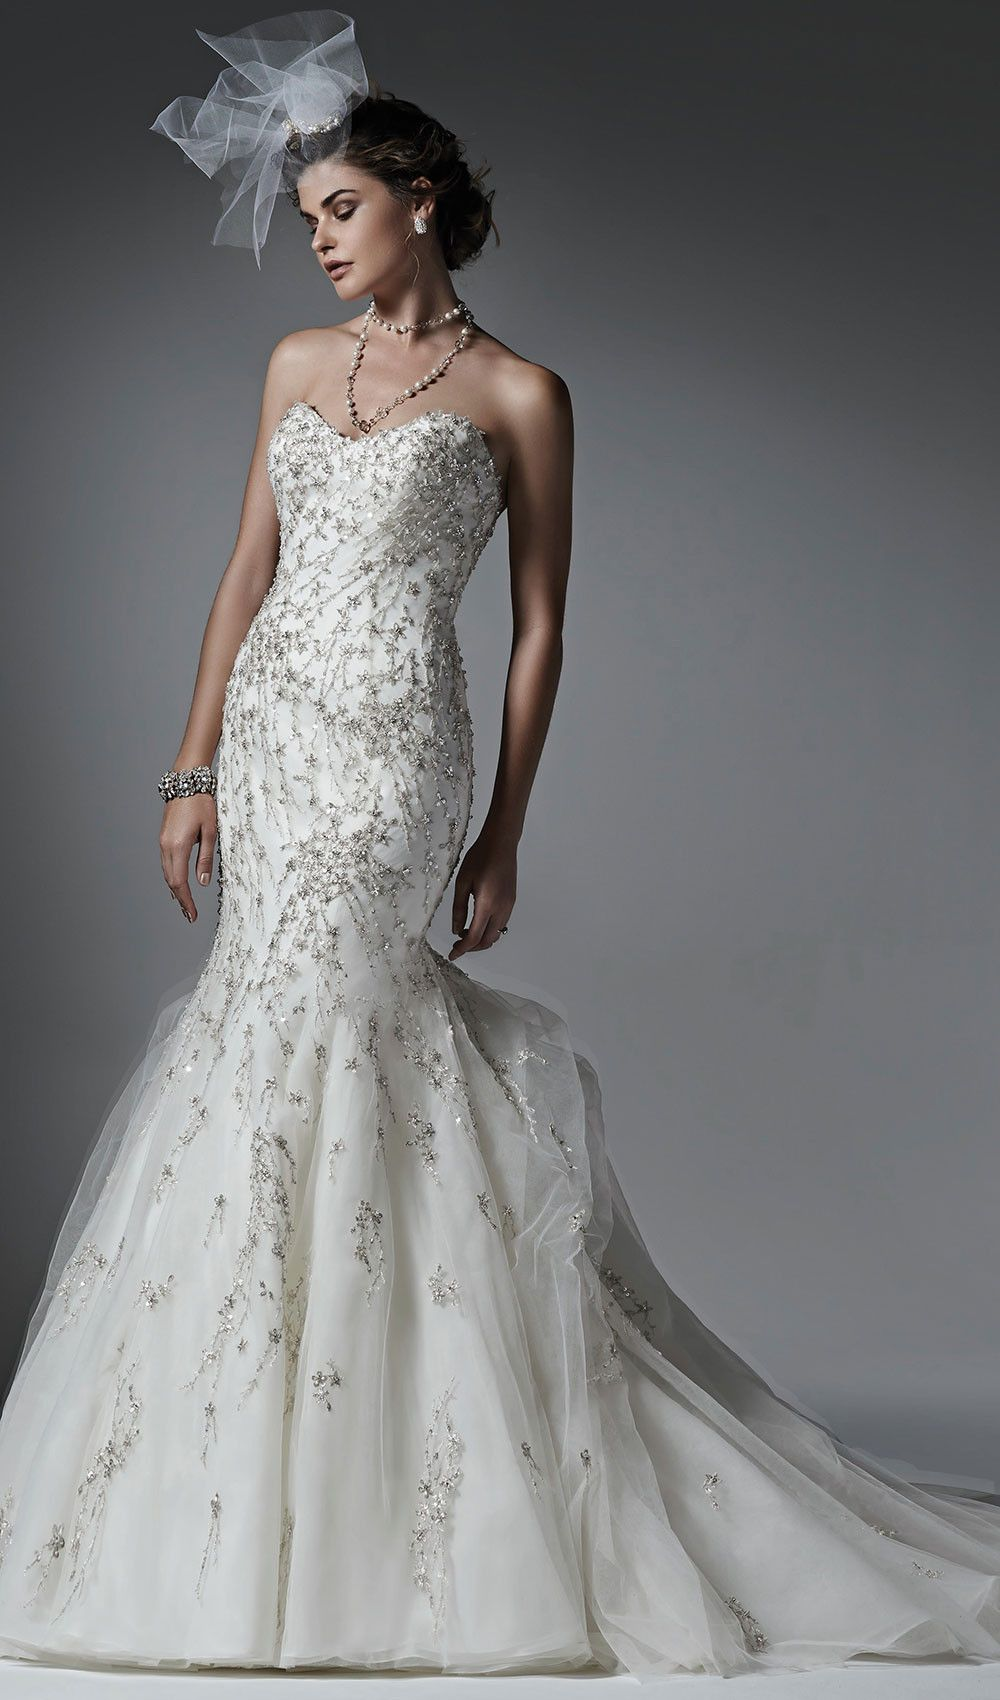 Try this tulle mermaid wedding dress, with a voluminous, ethereal skirt. Glittering Swarovski crystals and shimmering beads sprinkle the bodice. From Sottero & Midgley. Available at Schaffer's in Des Moines, Iowa. Wedding Dress Info: SOTTERO & MIDGLEY – STYLE DONALEE.